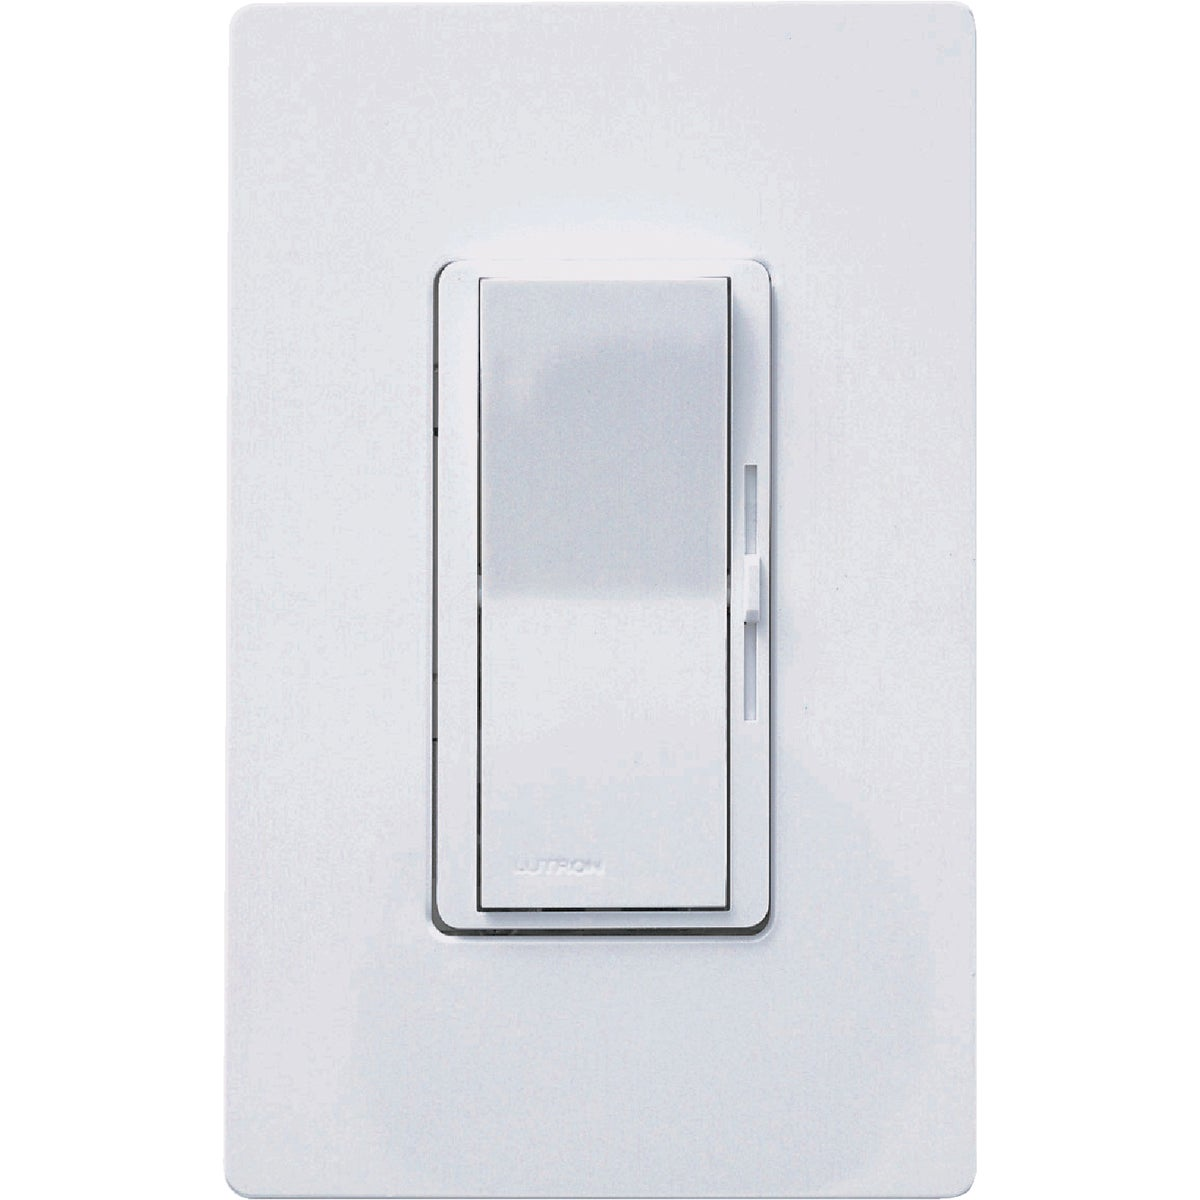 WHT SP SLIDE DIMMER